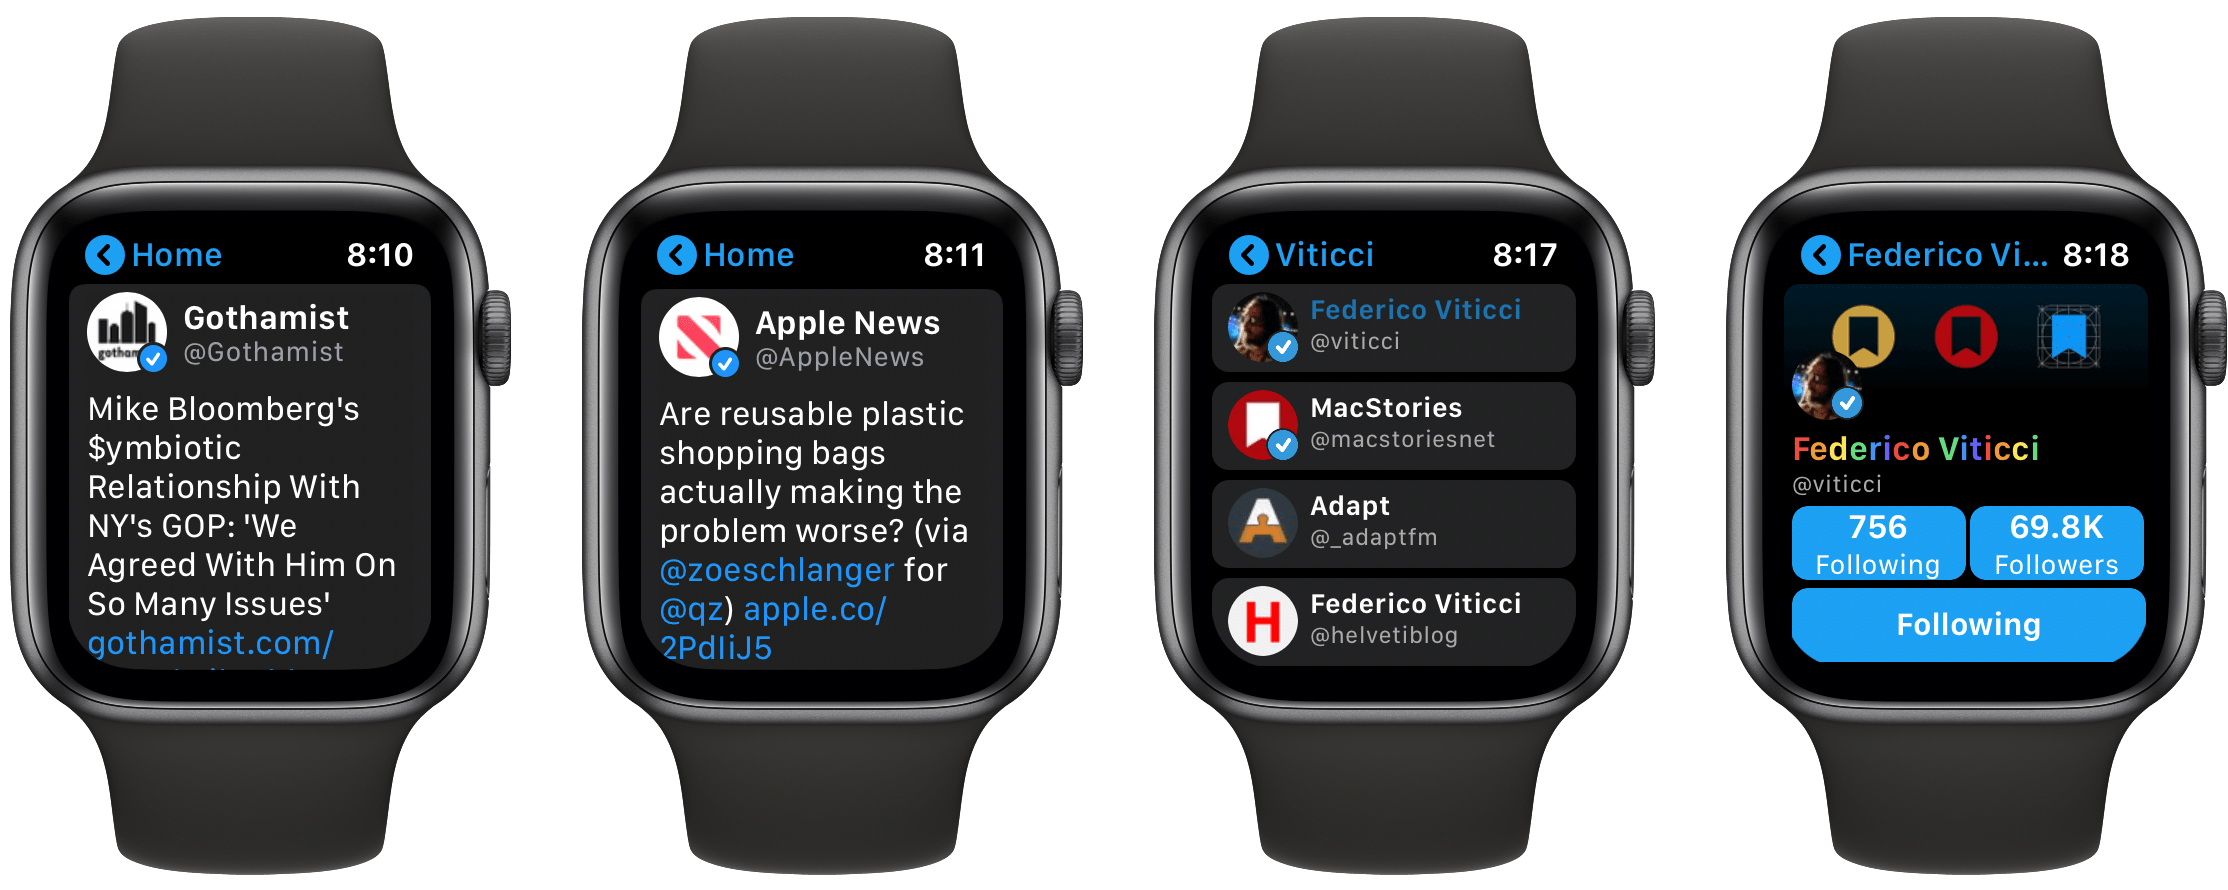 Chirp 2.0 Offers a Remarkably Full-Featured Twitter Experience on Apple Watch